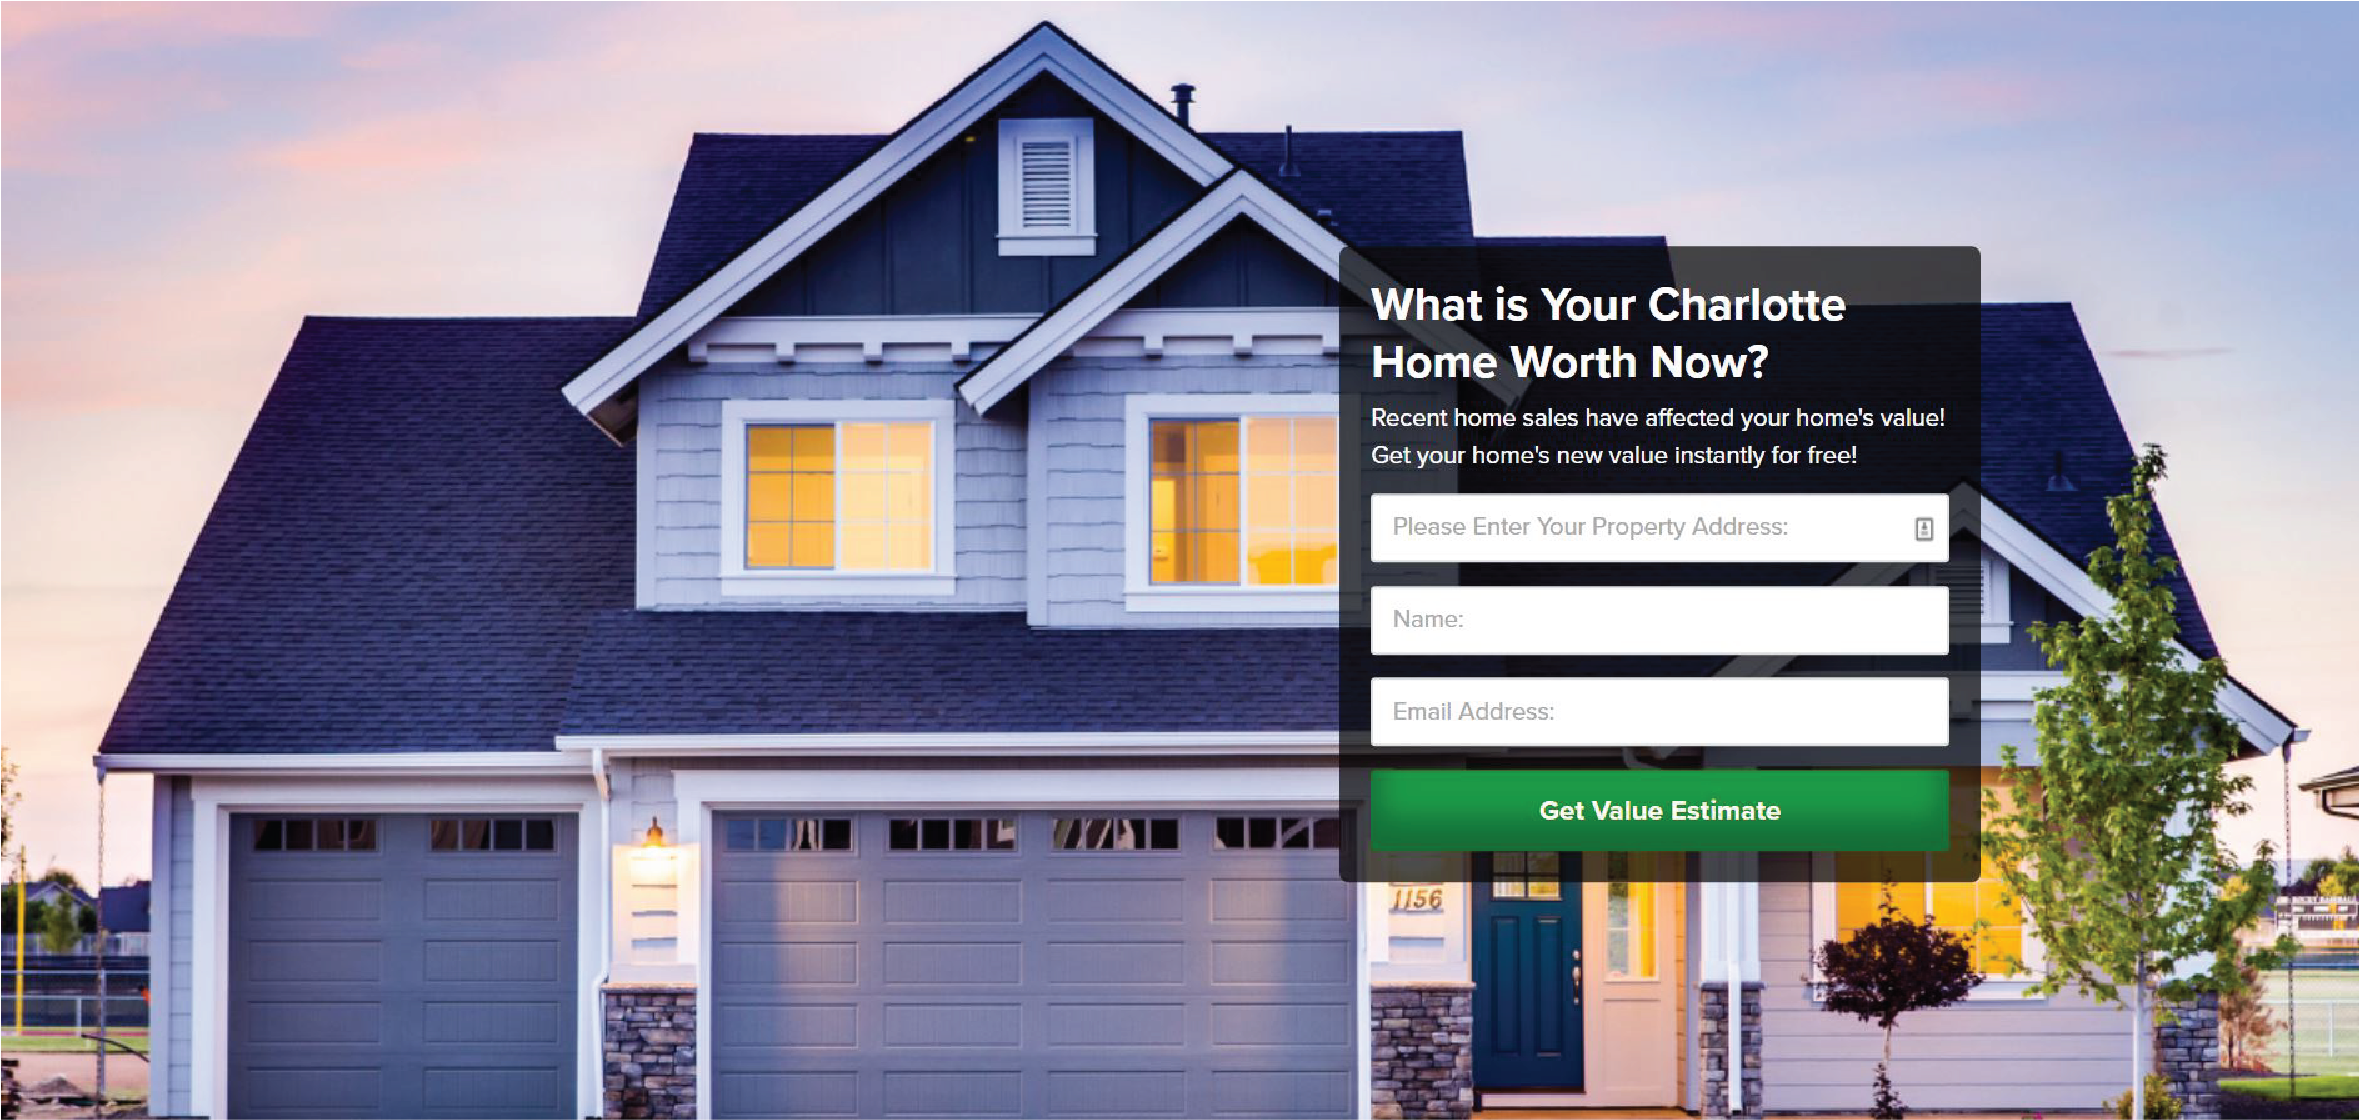 Home Evaluation Landing Page.